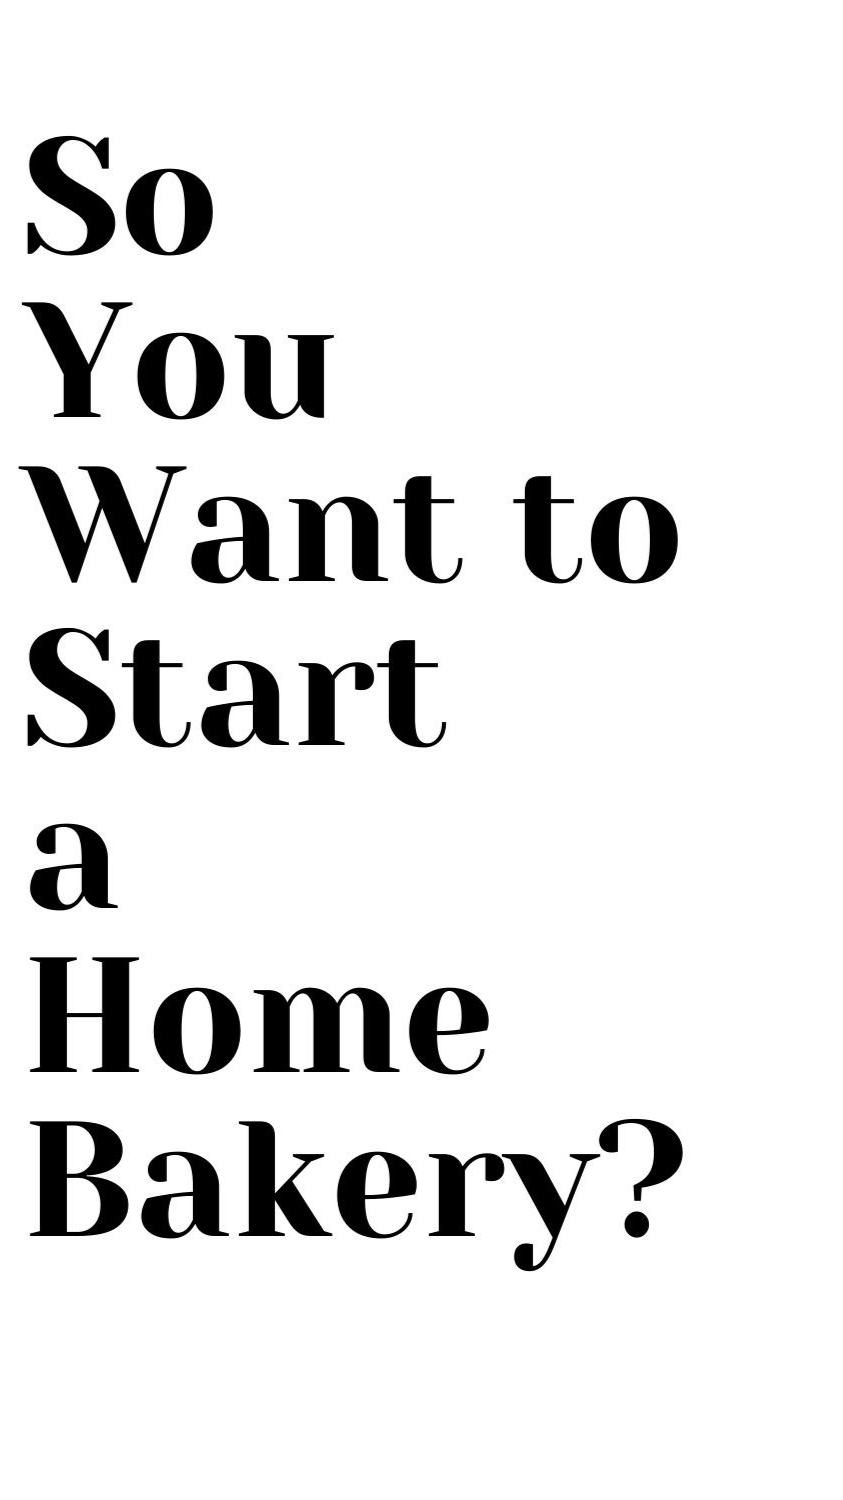 So You're Interested in Starting a Bakery?